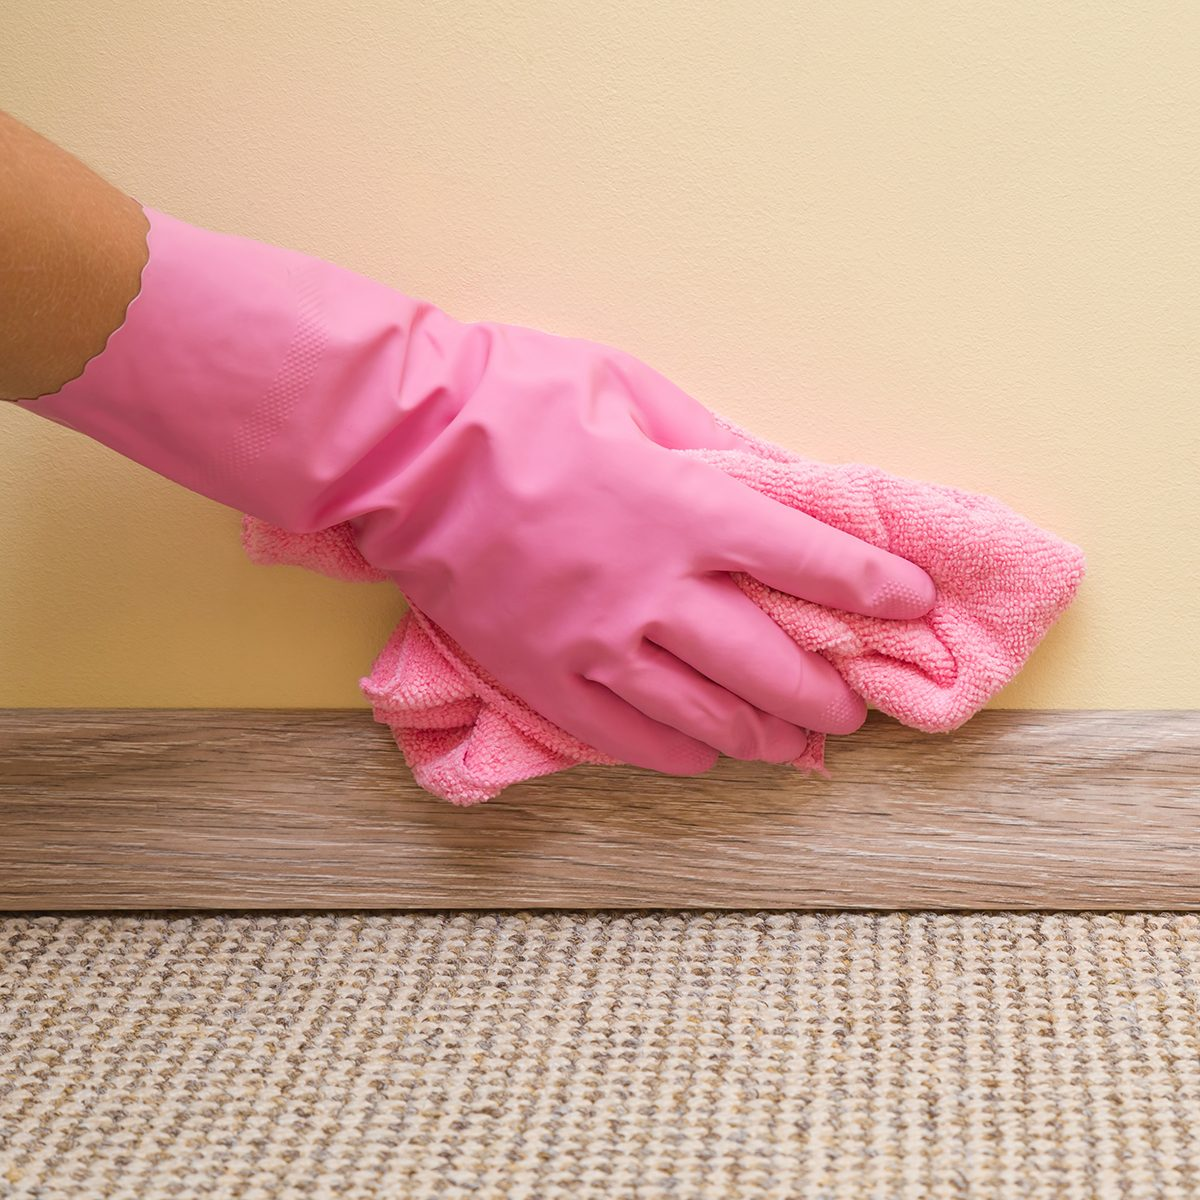 Hand in rubber protective glove with microfiber cloth cleaning baseboard on the floor from dust at the wall. Early spring cleaning or regular clean up. Maid cleans house.; Shutterstock ID 687988345